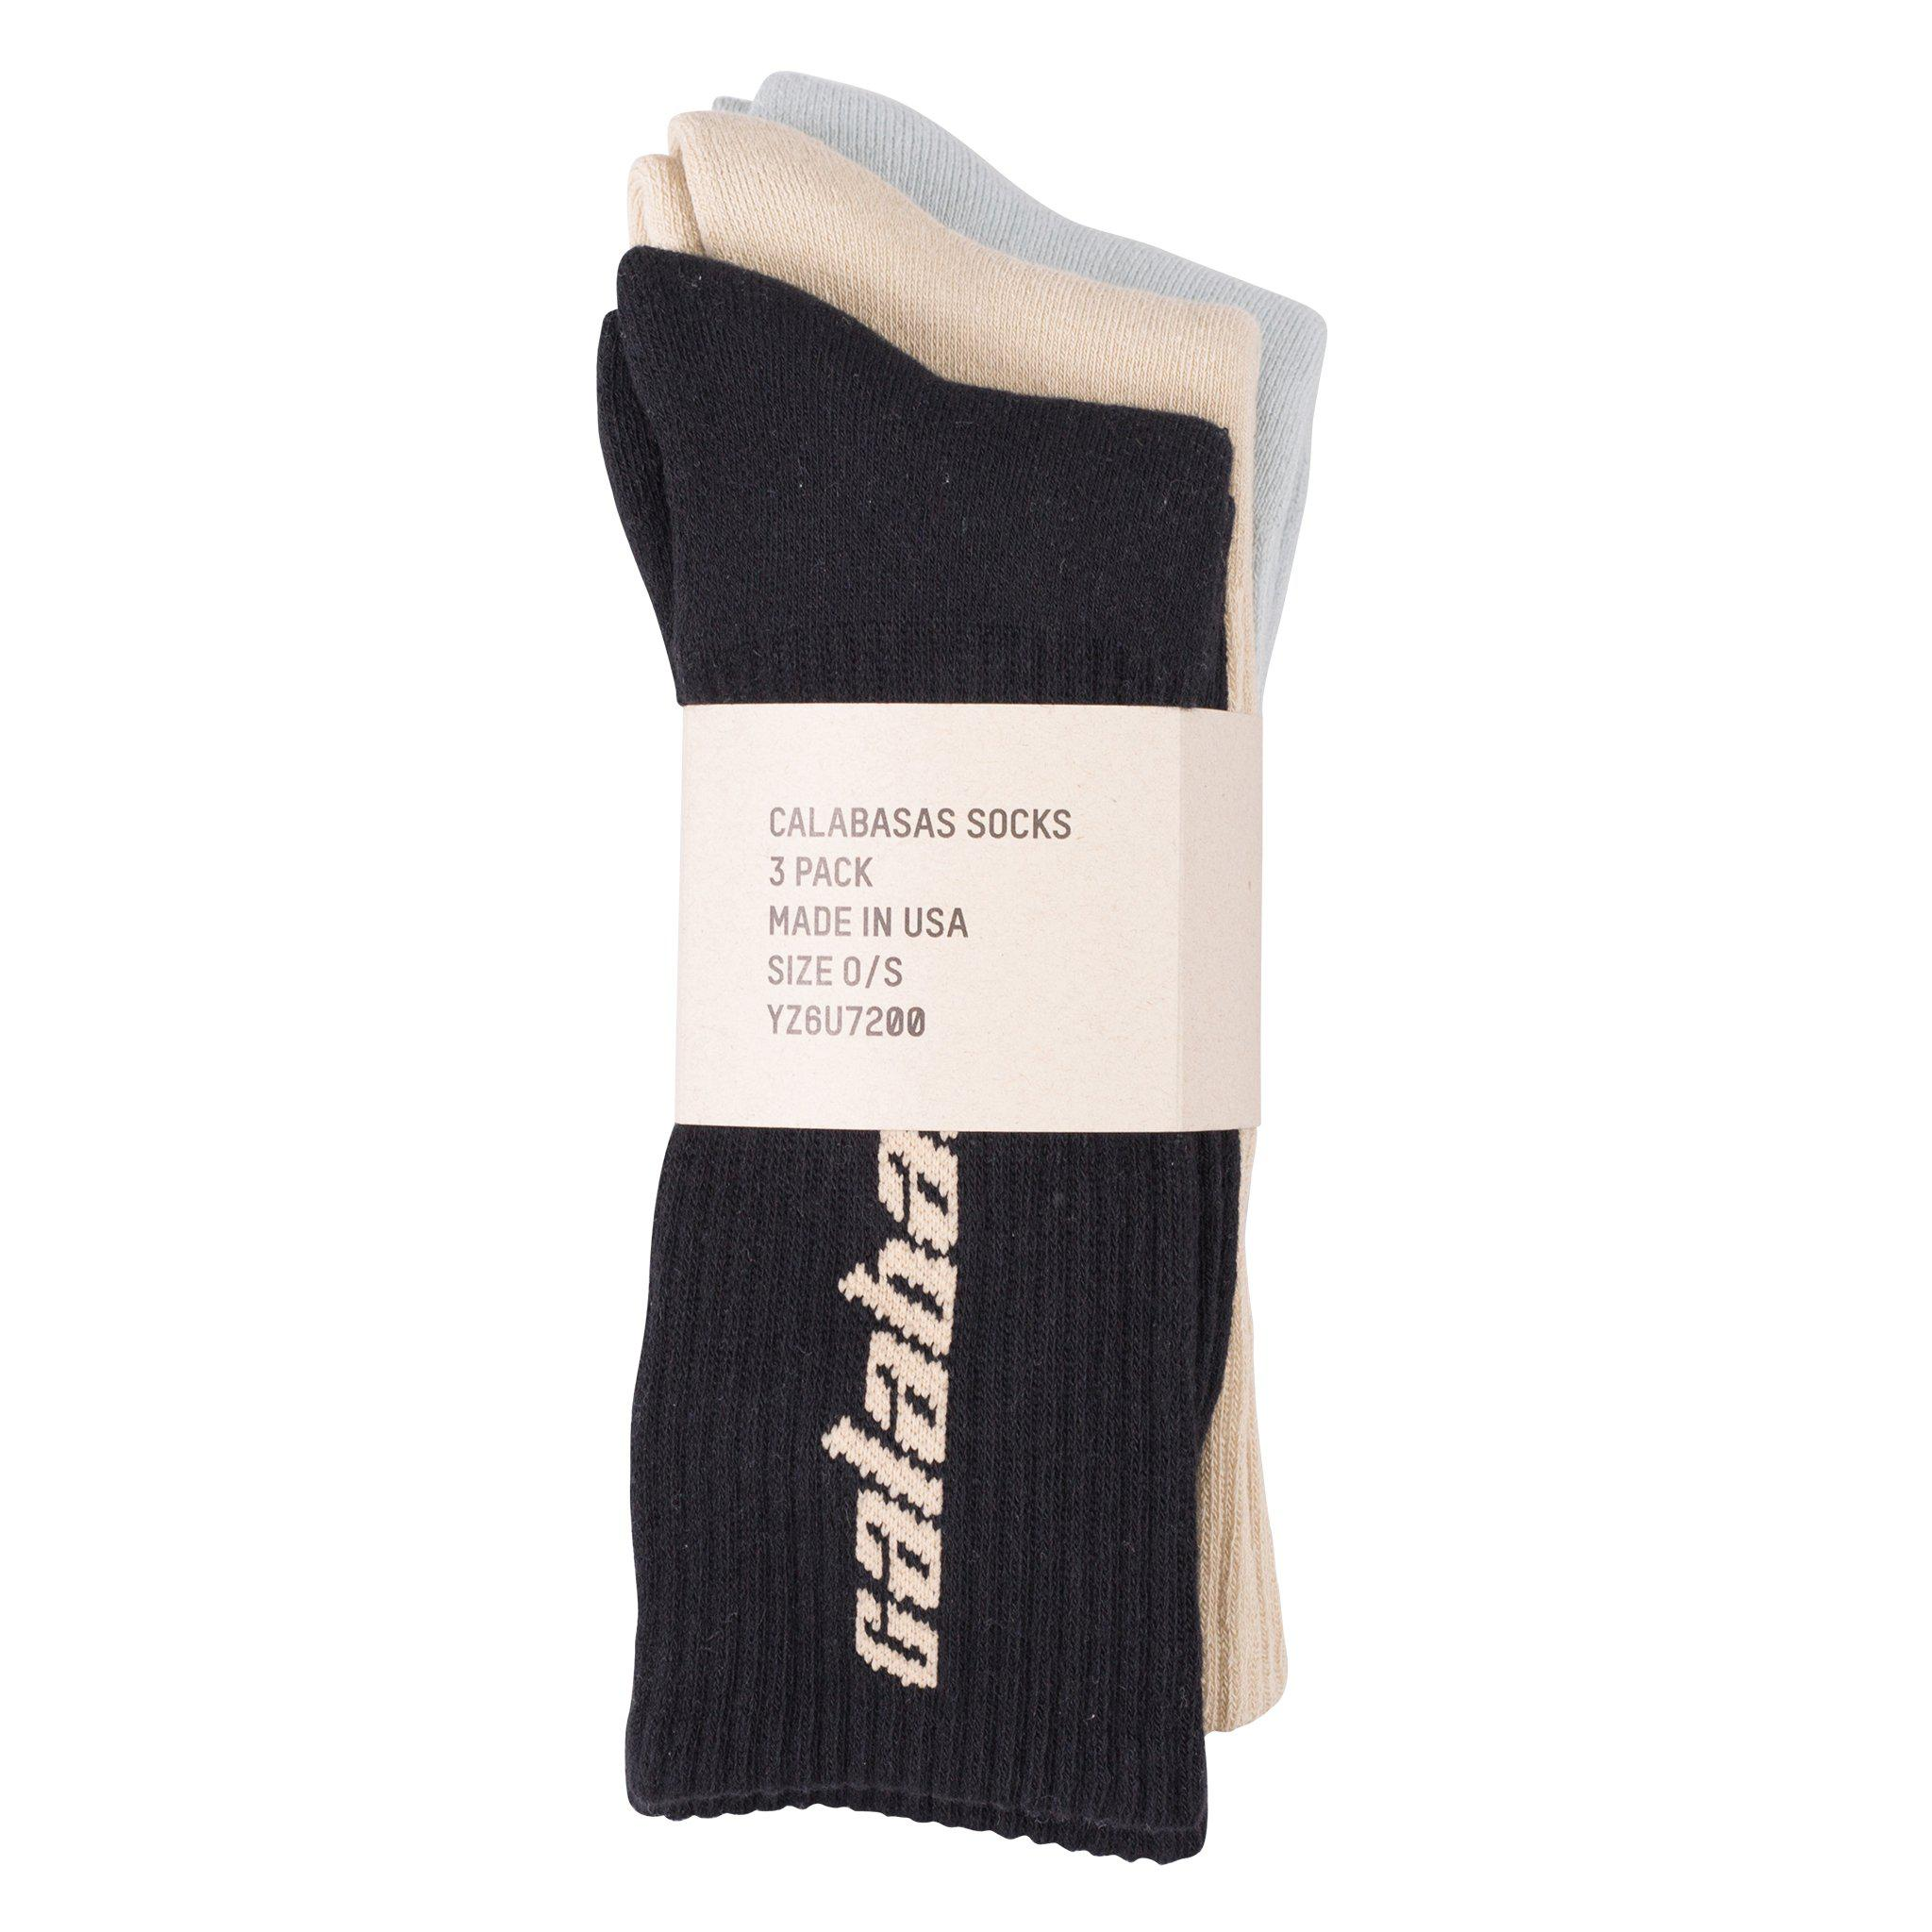 8e118cac Yeezy 'calabasas' Socks (3 Pack) for Men - Lyst